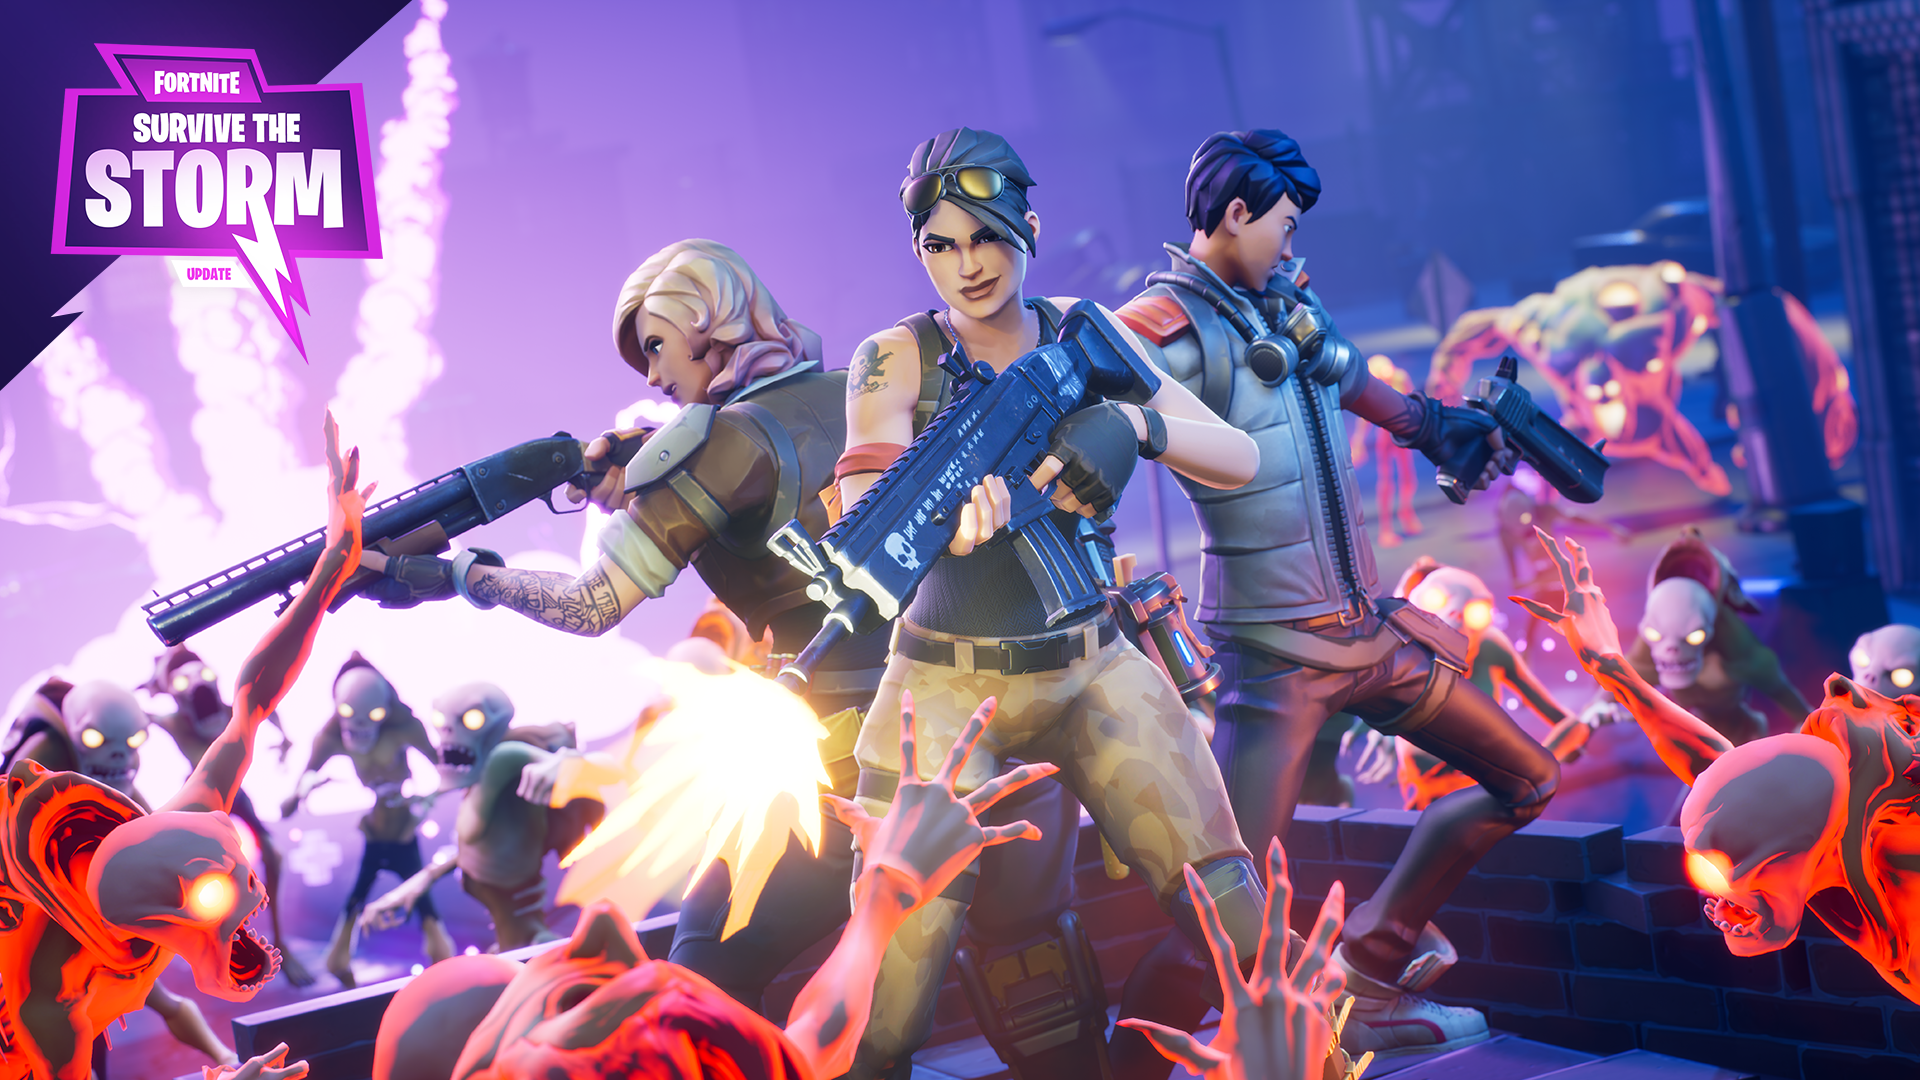 Fortnite%2Fblog%2Fsurvive-the-storm---release-notes%2FENG_Storm-Zone-1920x1080-f0d9c7956465fafd7f45fc10032b1b0c6b4abacc